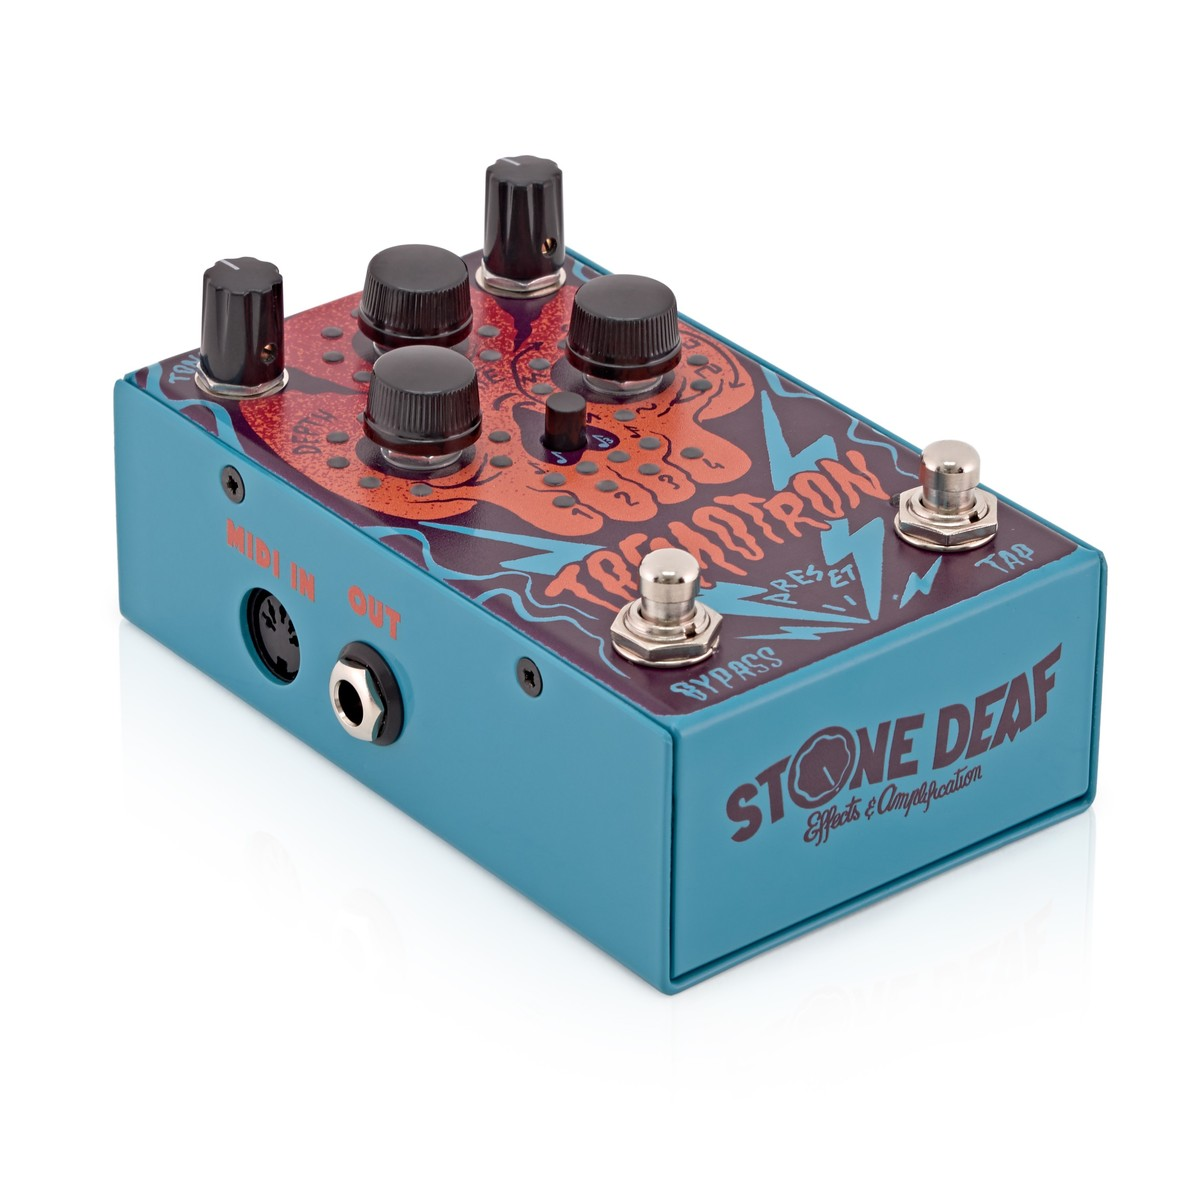 stone deaf fx tremotron analog tremolo guitar pedal at gear4music. Black Bedroom Furniture Sets. Home Design Ideas